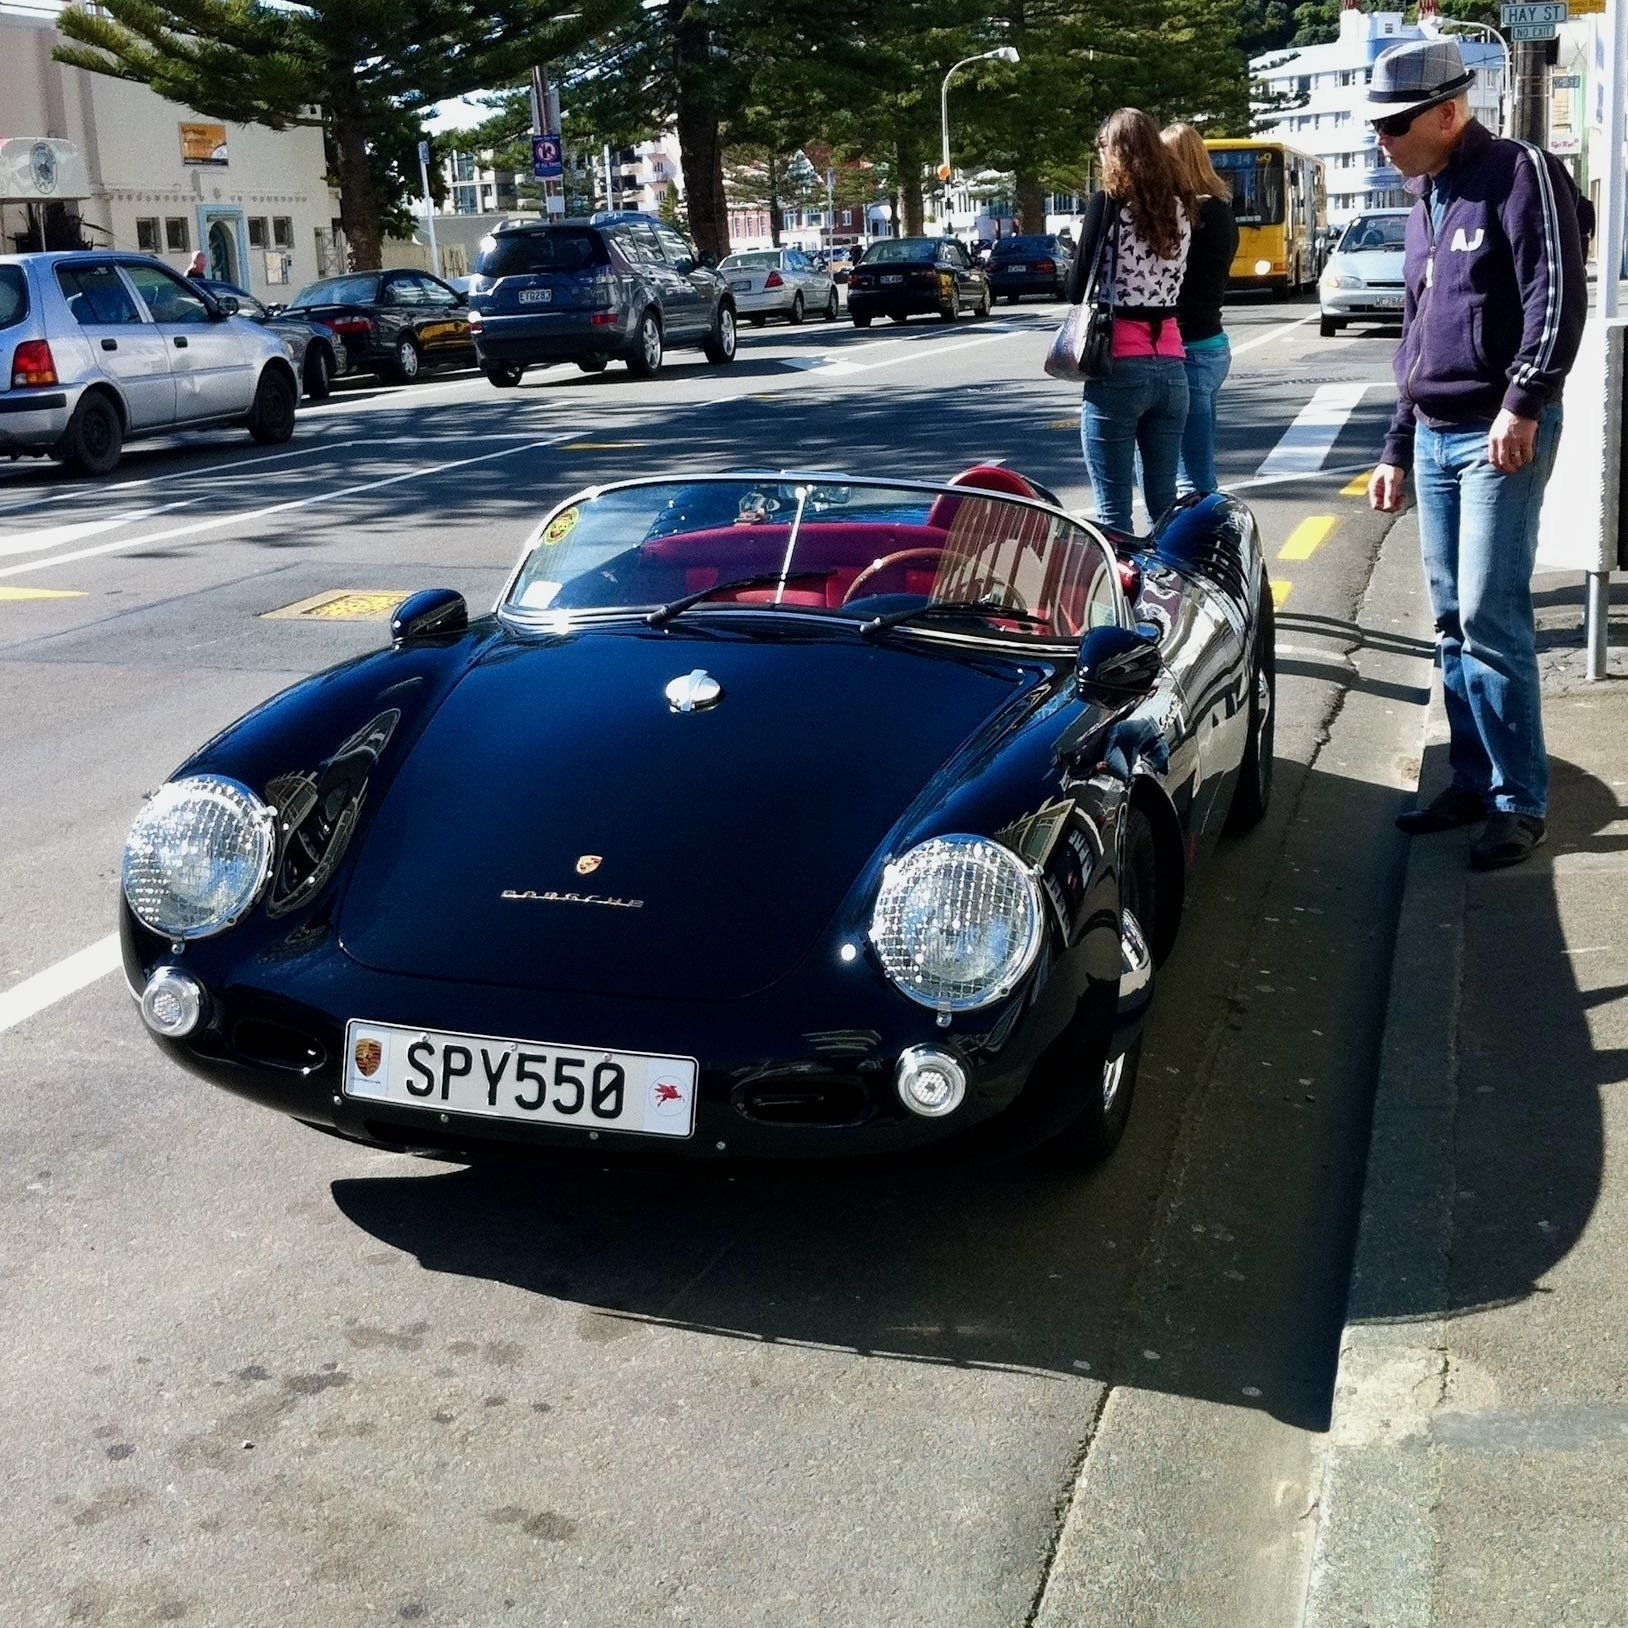 Porsche Spyder sports car front view, with a hipster admiring it.